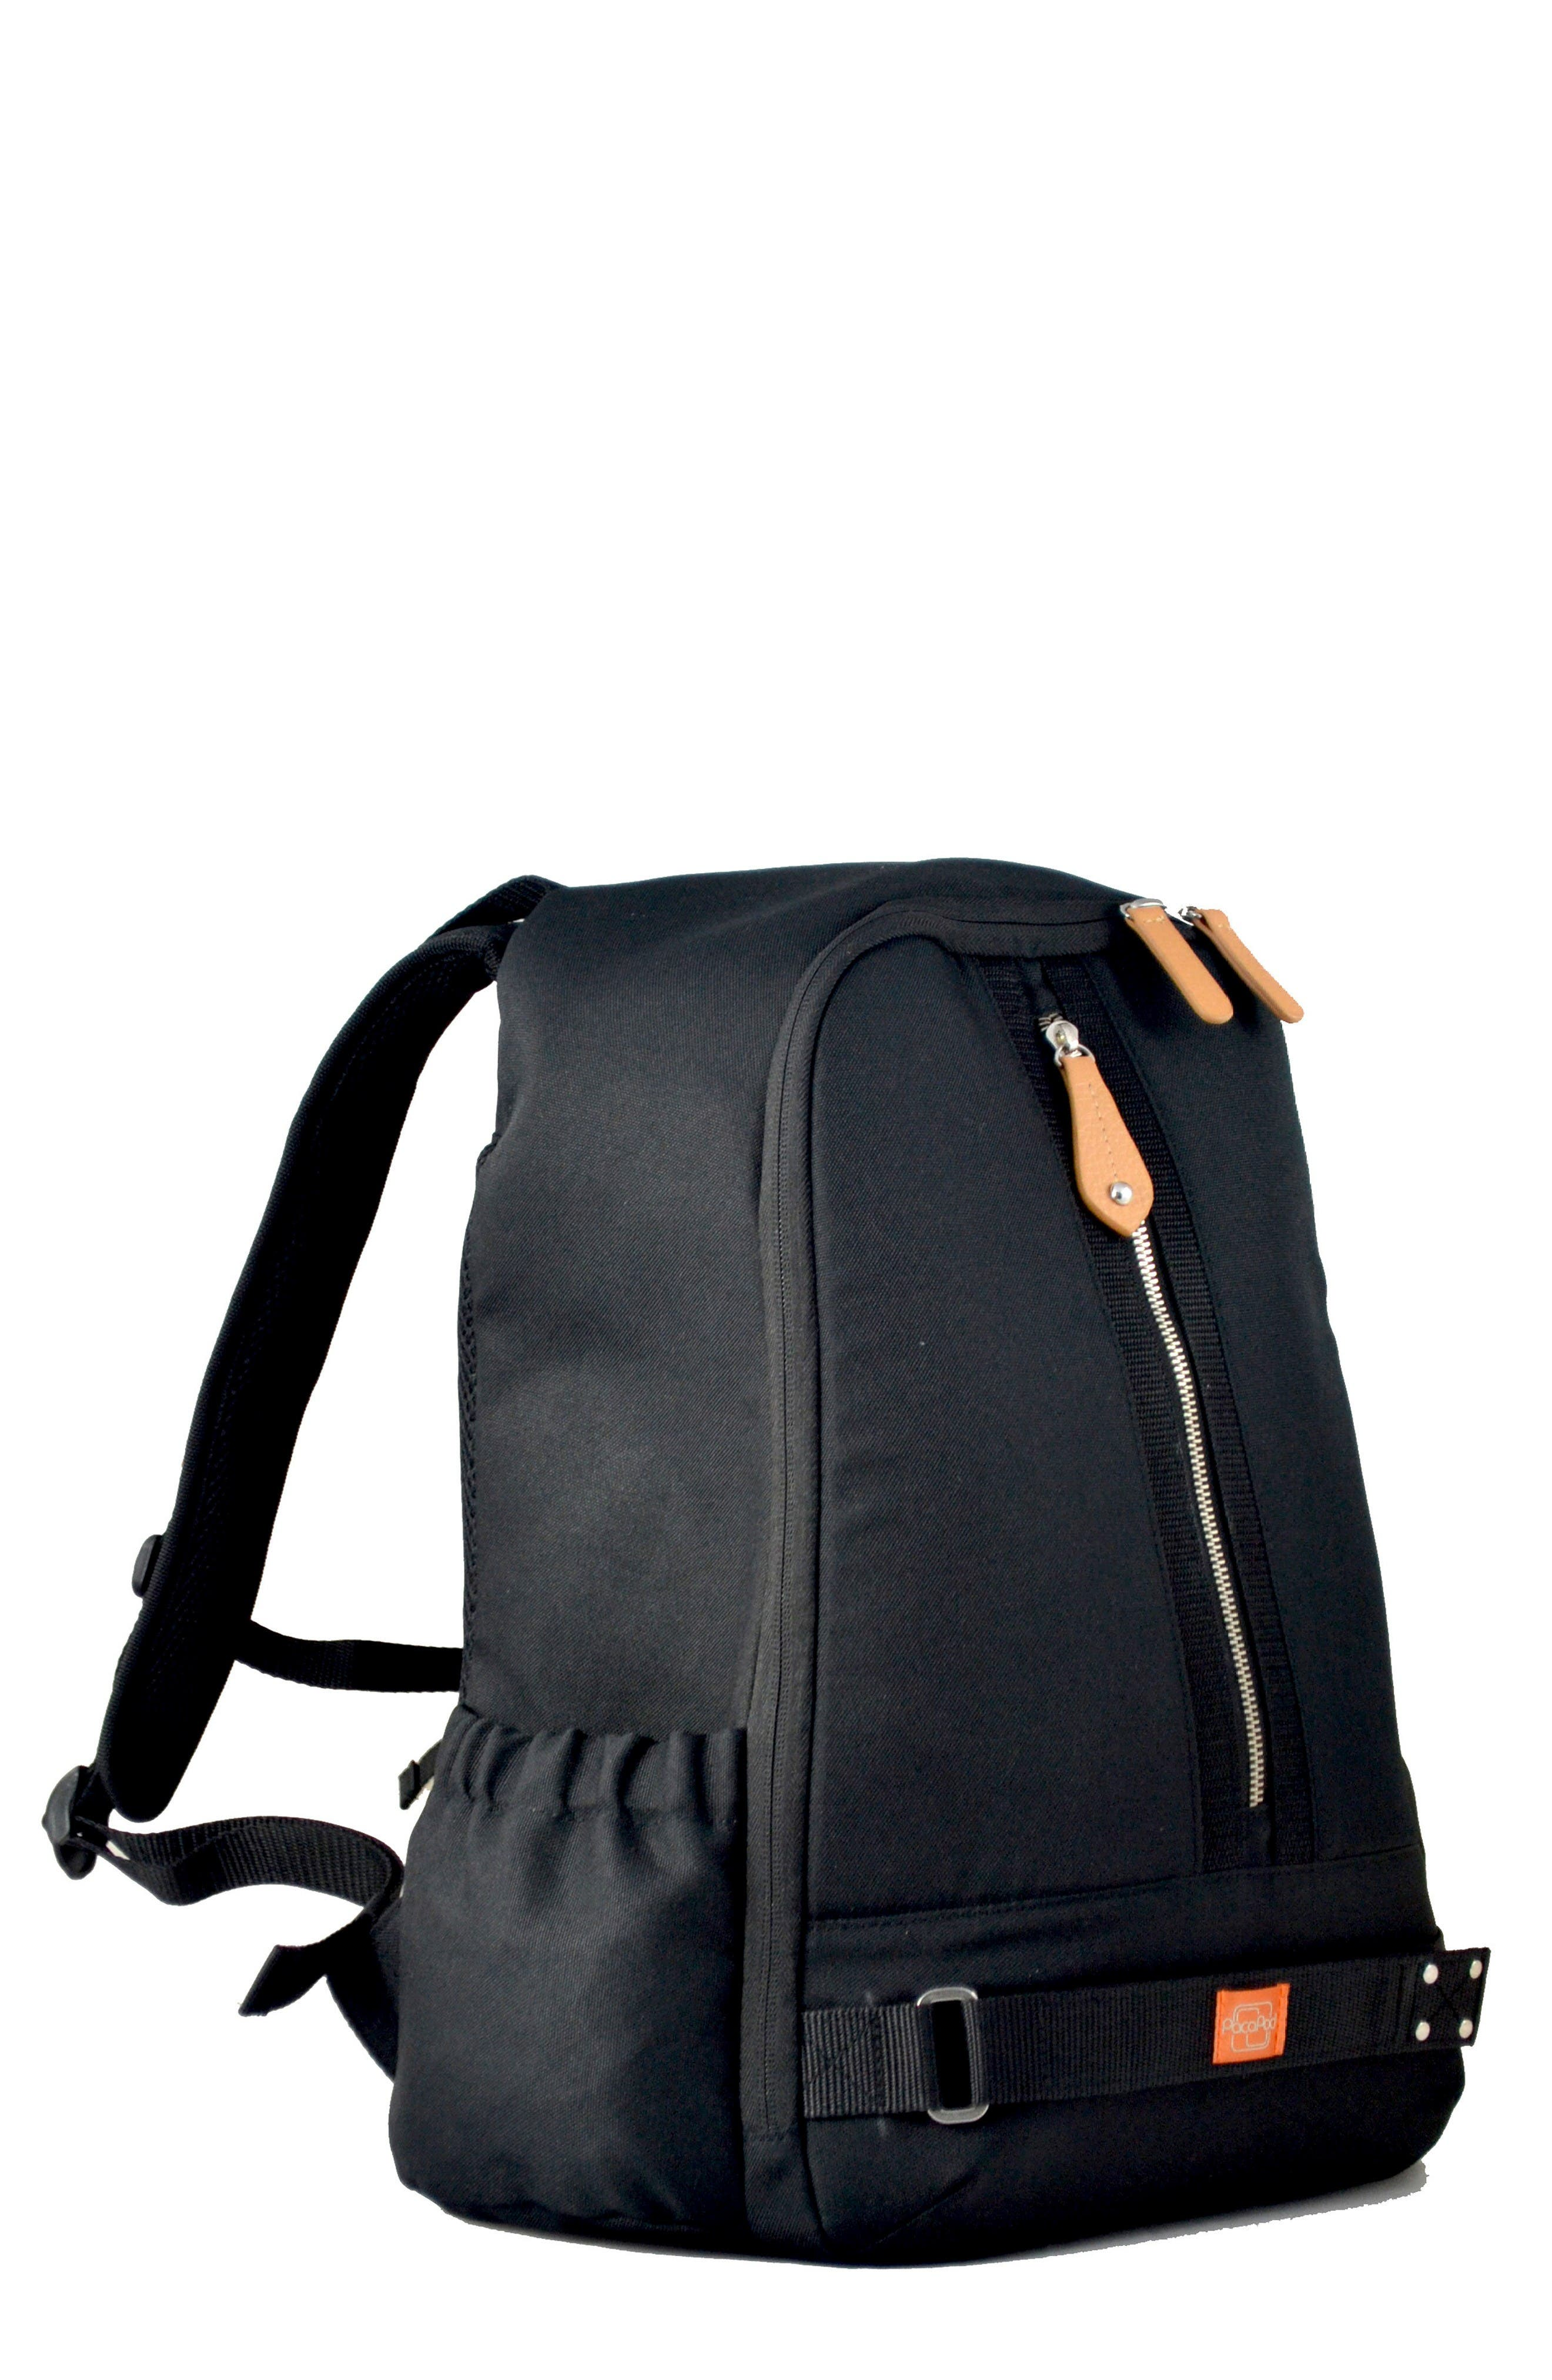 Main Image - PacaPod Picos Pack Diaper Backpack